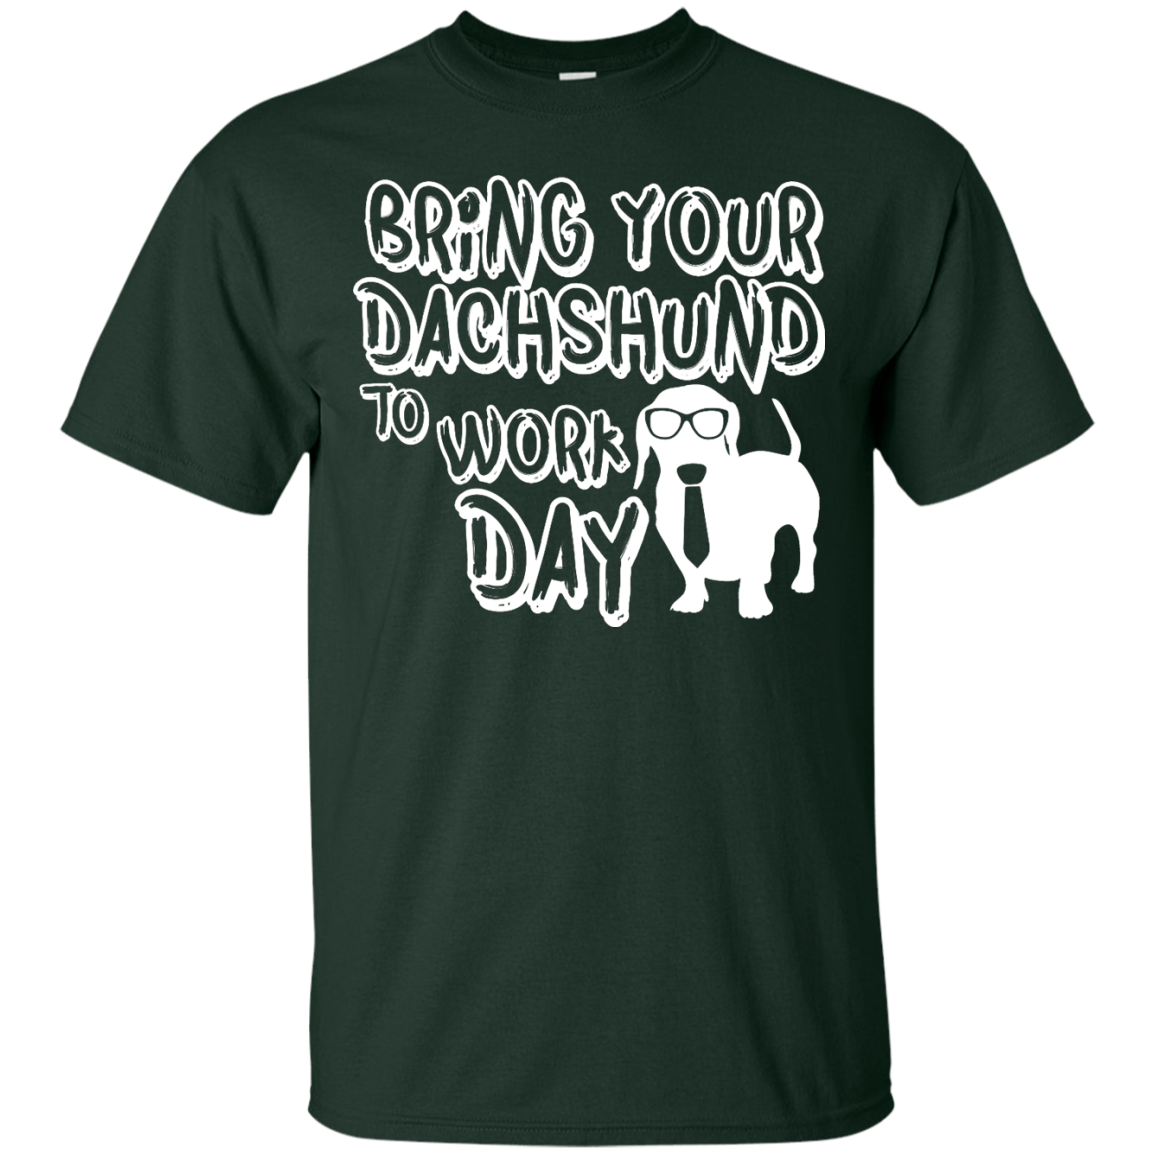 Bring Your Dachshund To Work Day themed T-Shirts & Hoodies for Men and Women